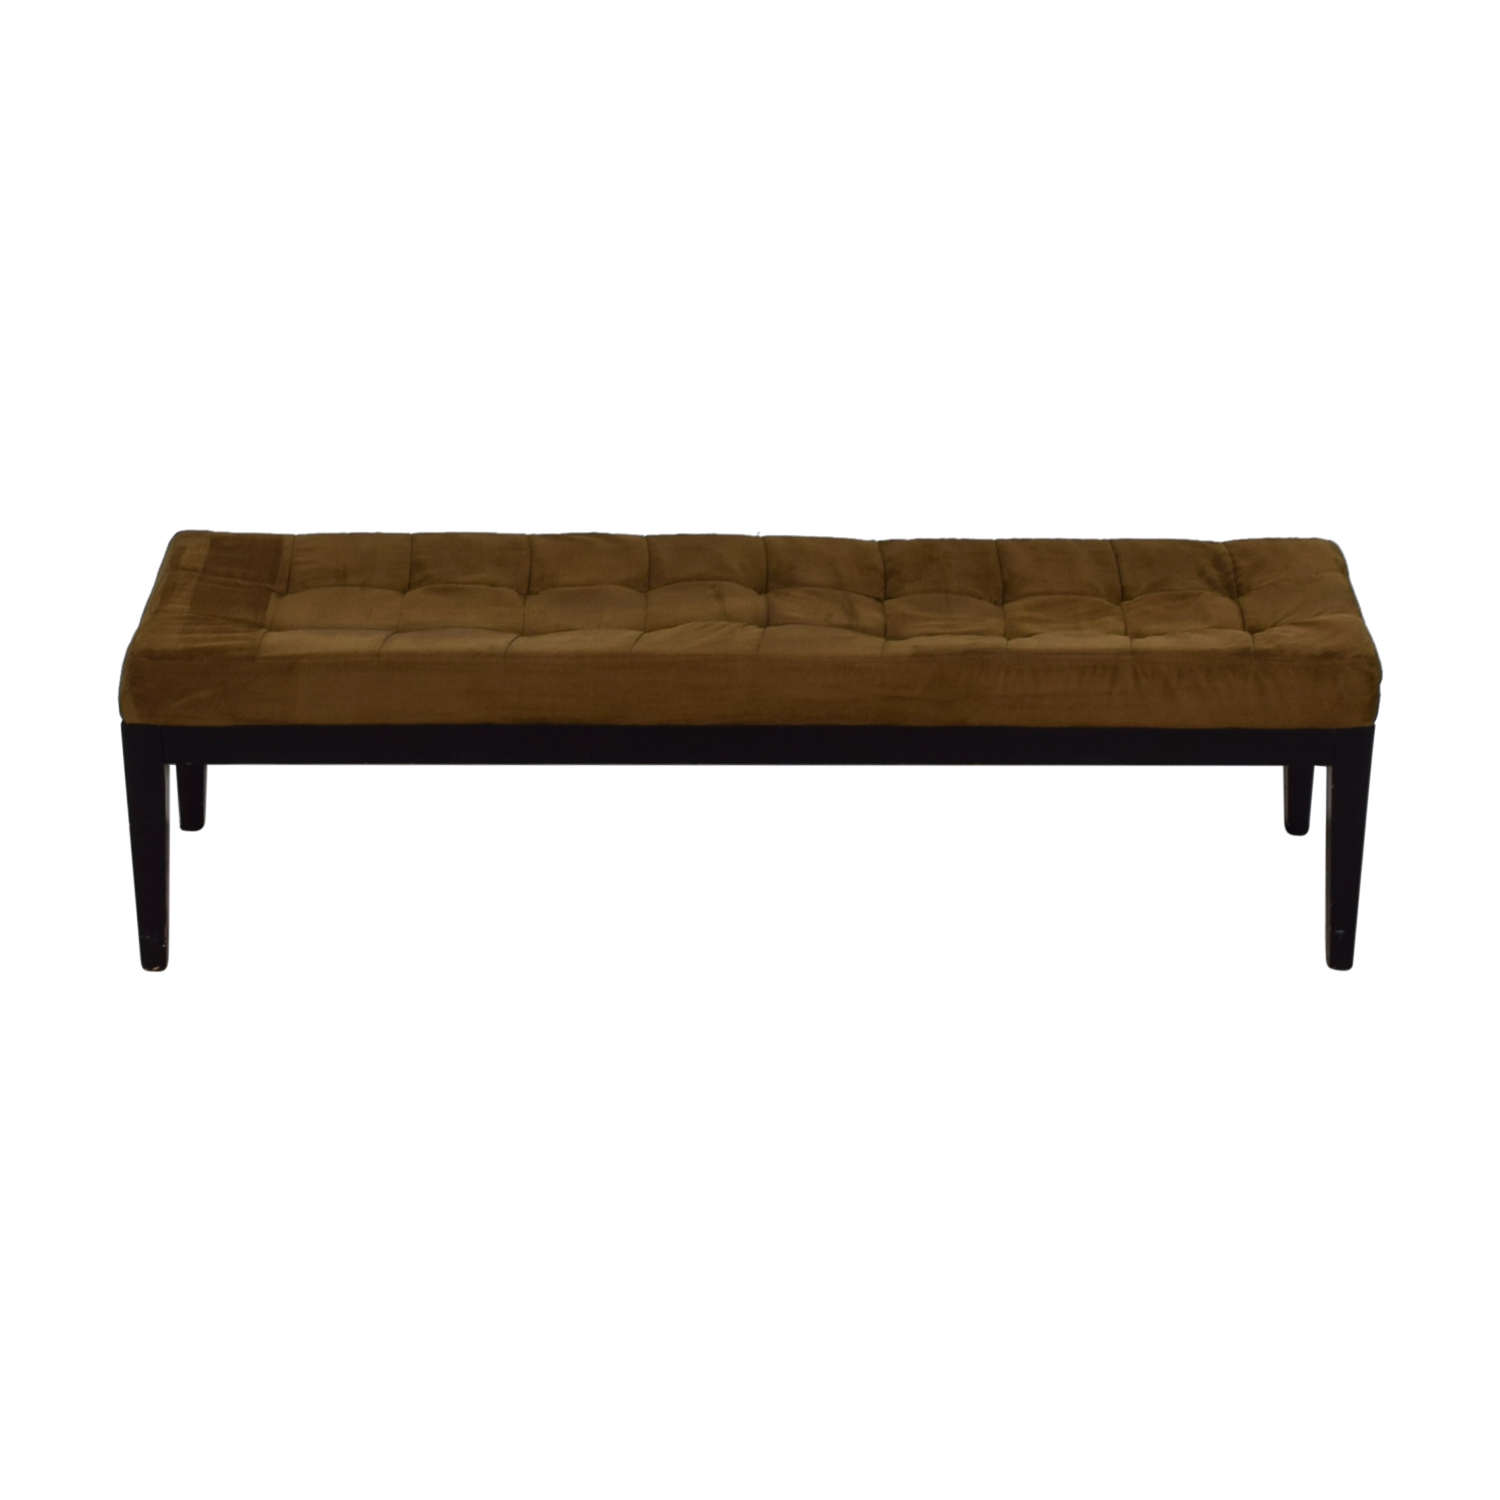 Brown Tufted Microfiber Bench price